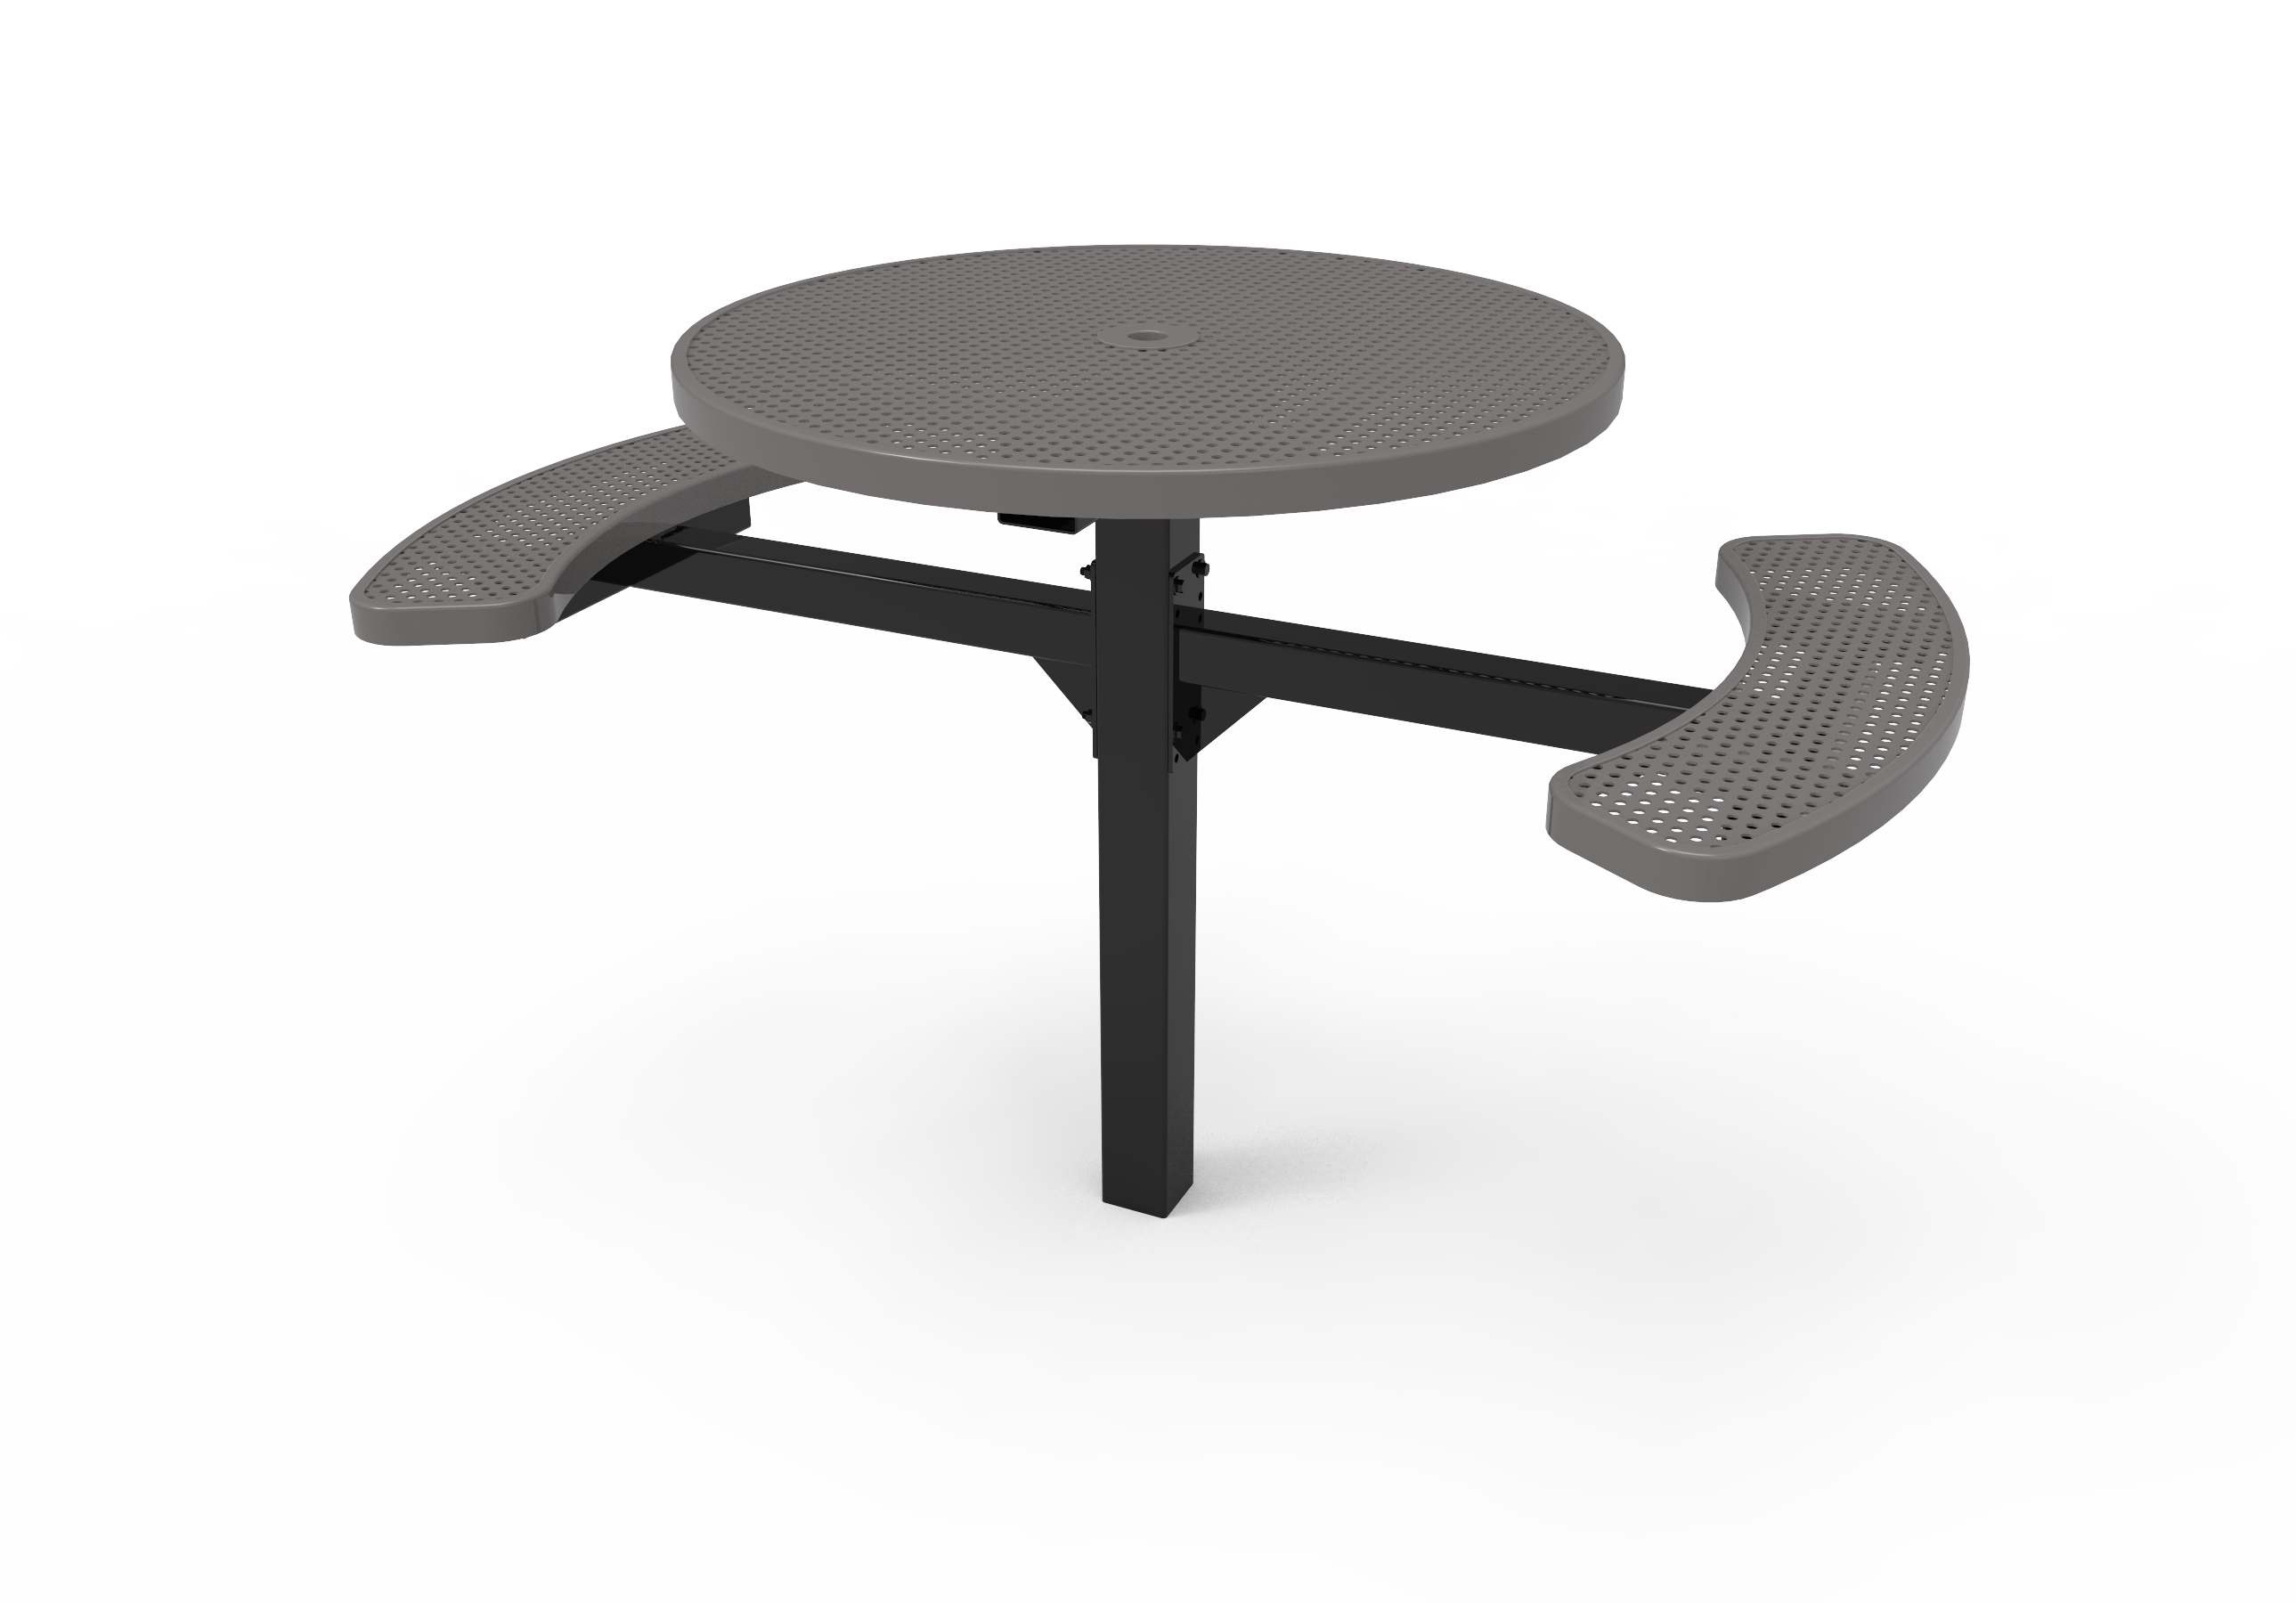 Lexington Round Pedestal Table - ADA Accessible, Frame with Powder Coat Finish, Top with Advance DuraLex Coating